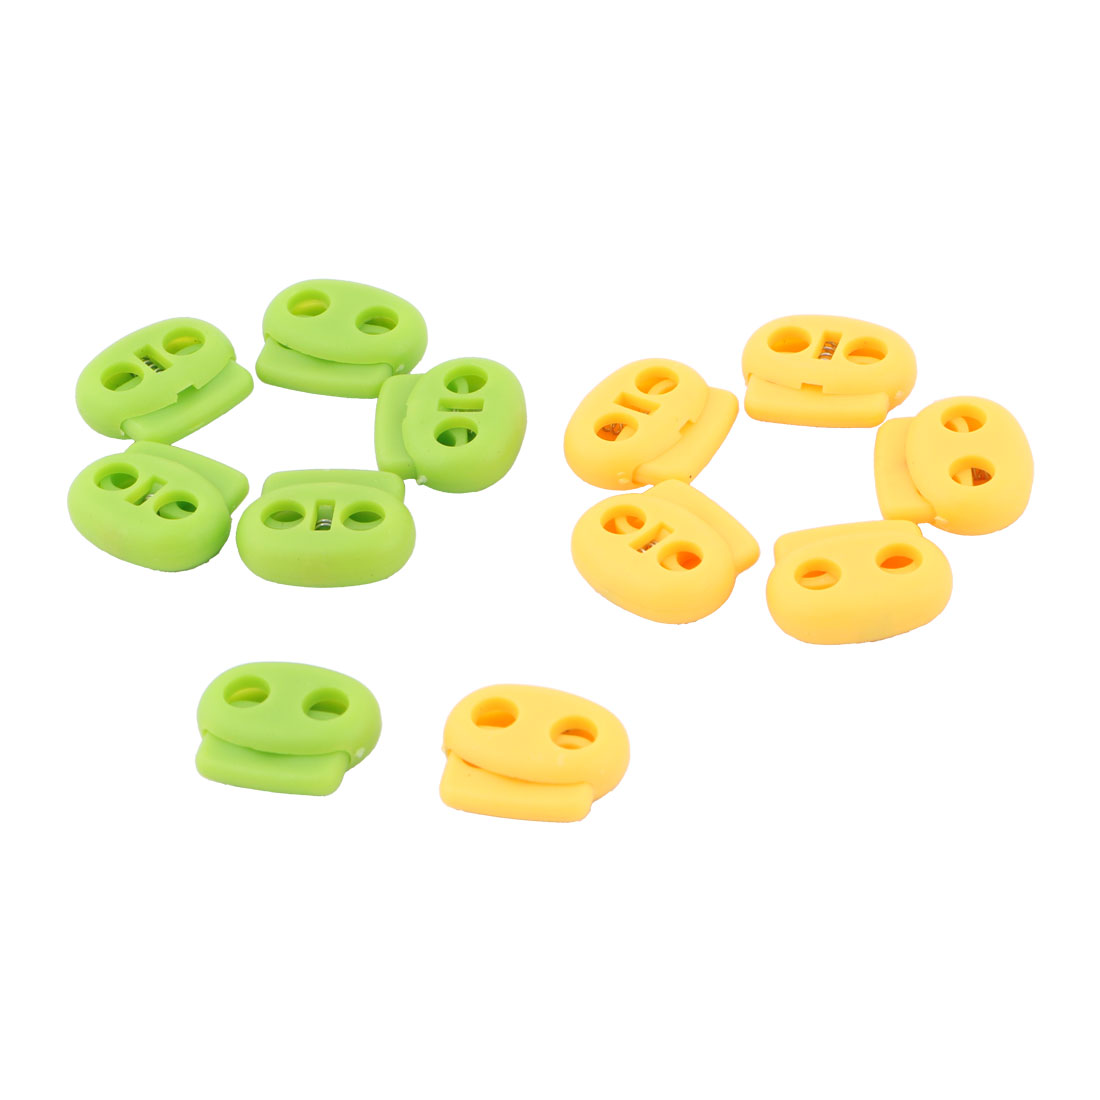 Sportwear Spring Plastic Double 0.2'' Hole End Stop Cord Lock Green Yellow 12pcs